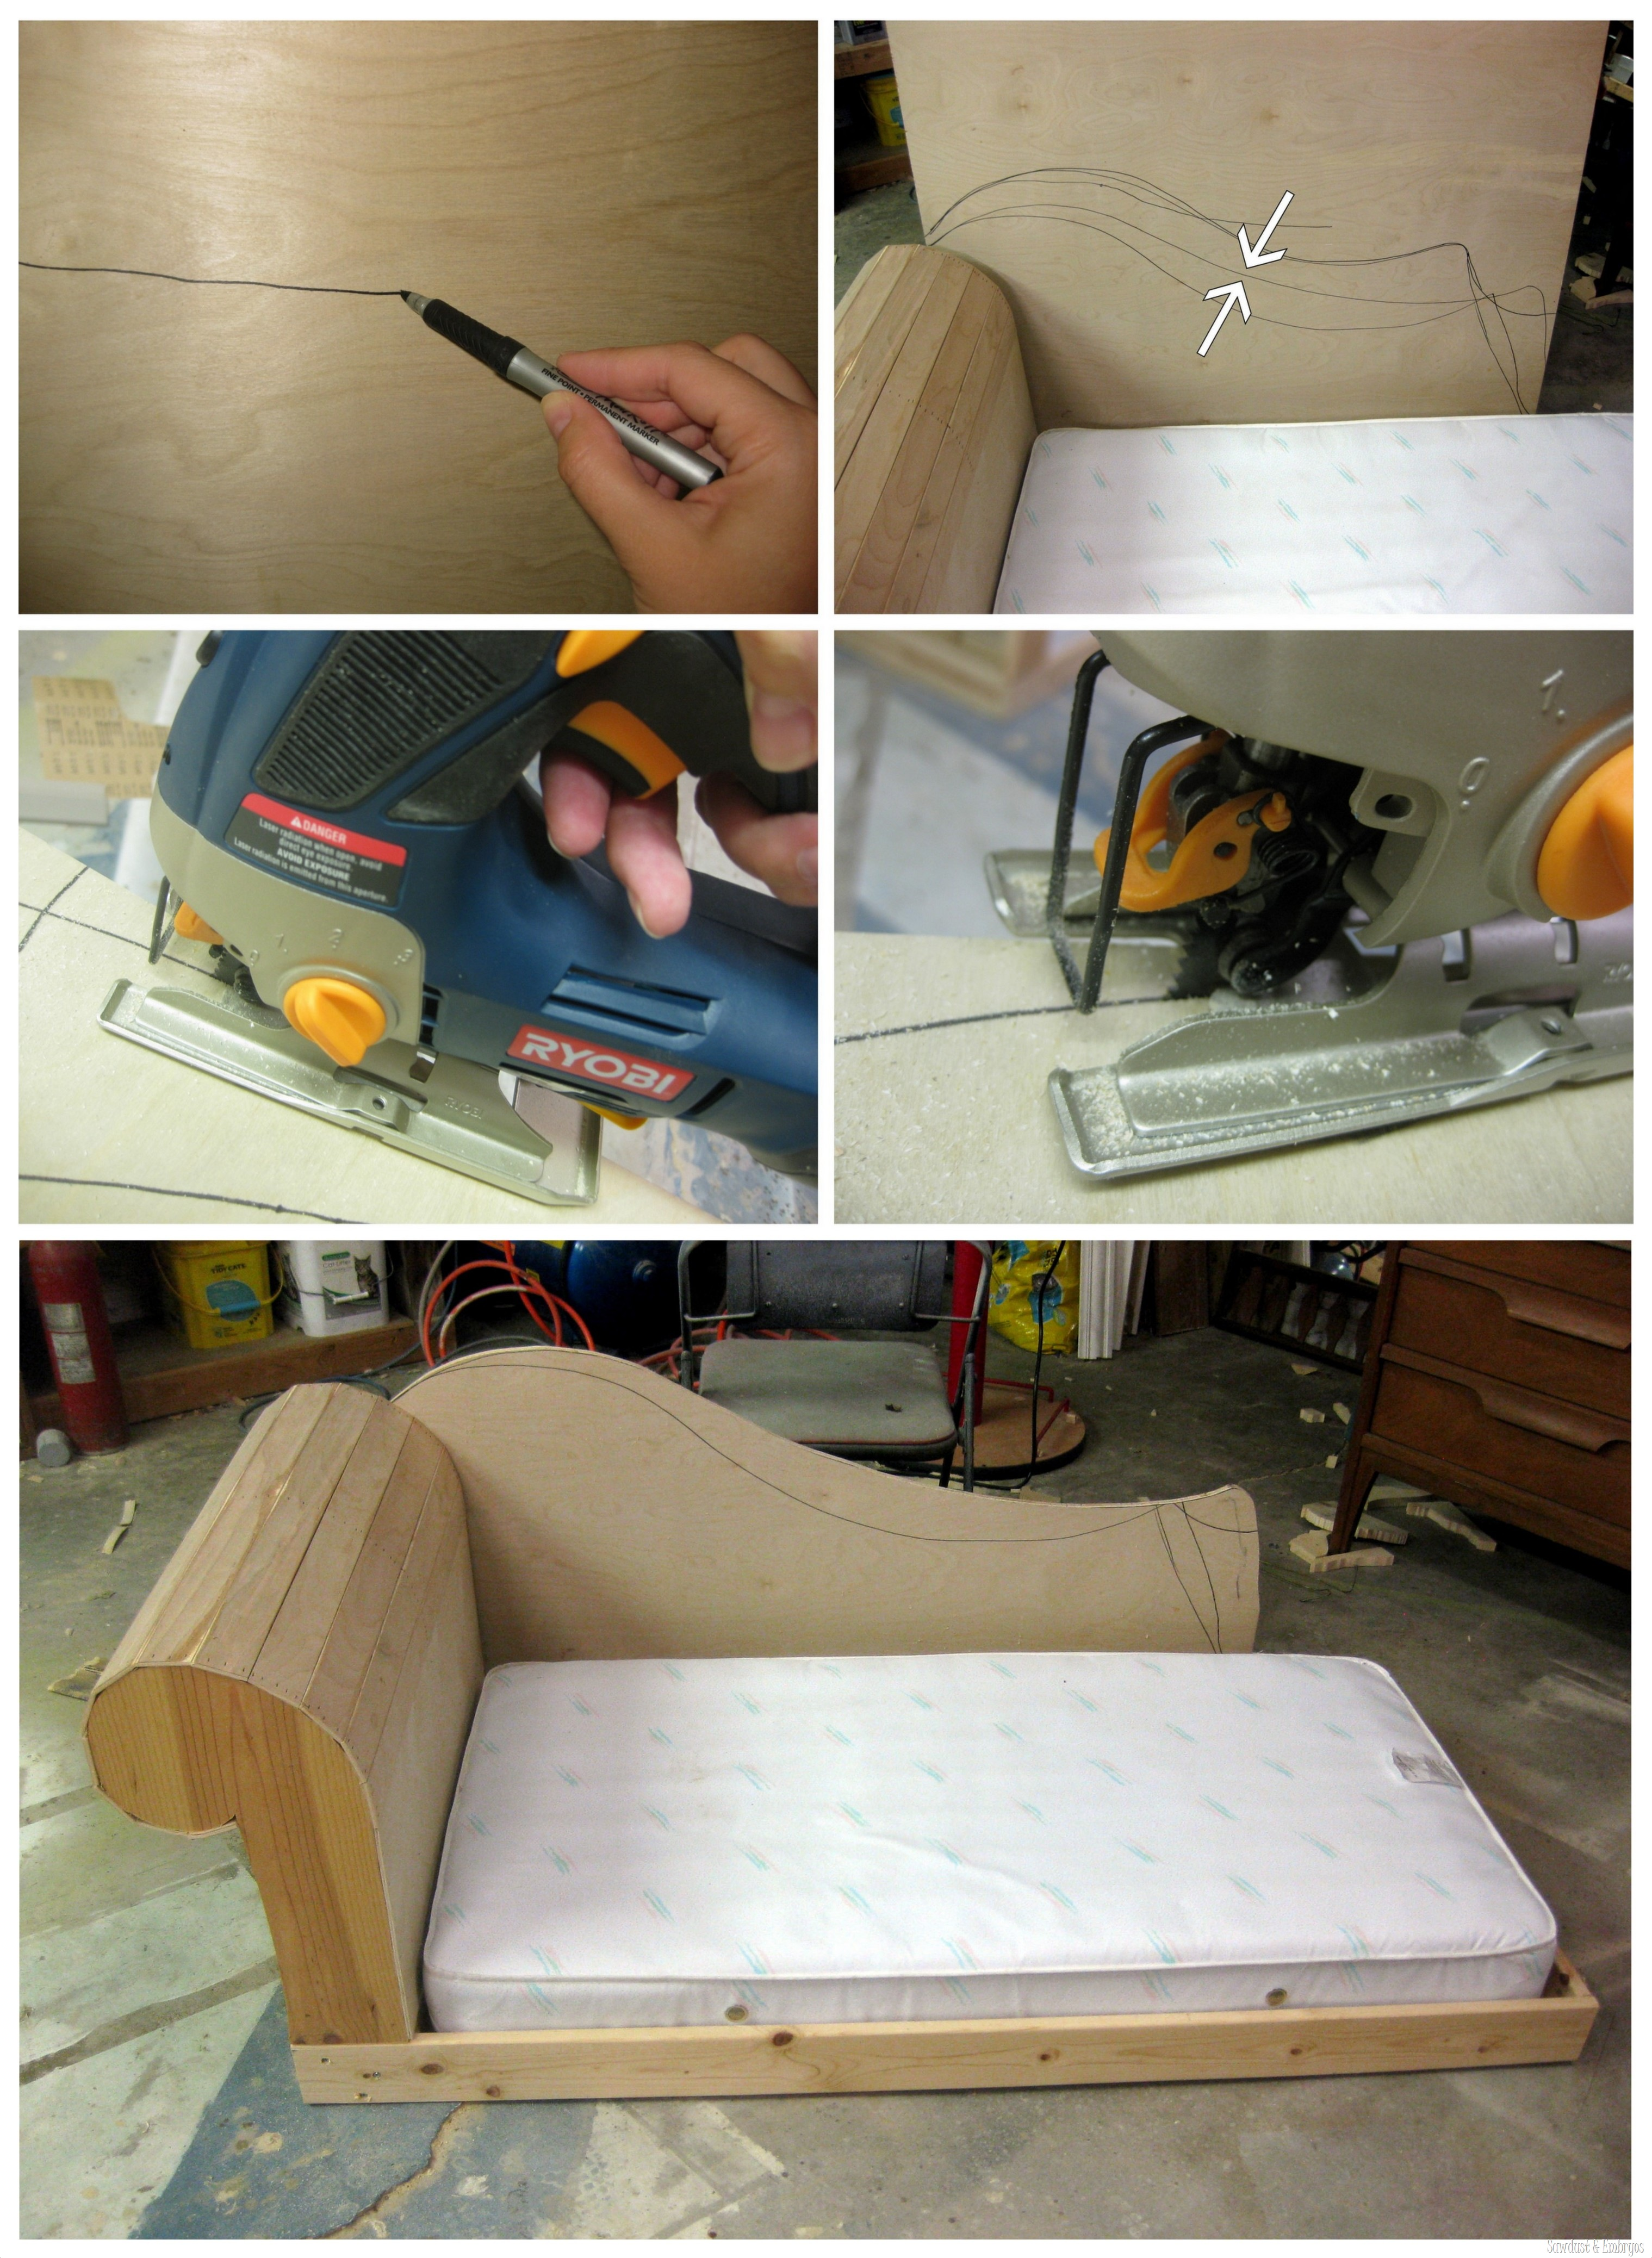 sofa glue band muji beads review diy toddler bed fainting couch part 2 reality daydream